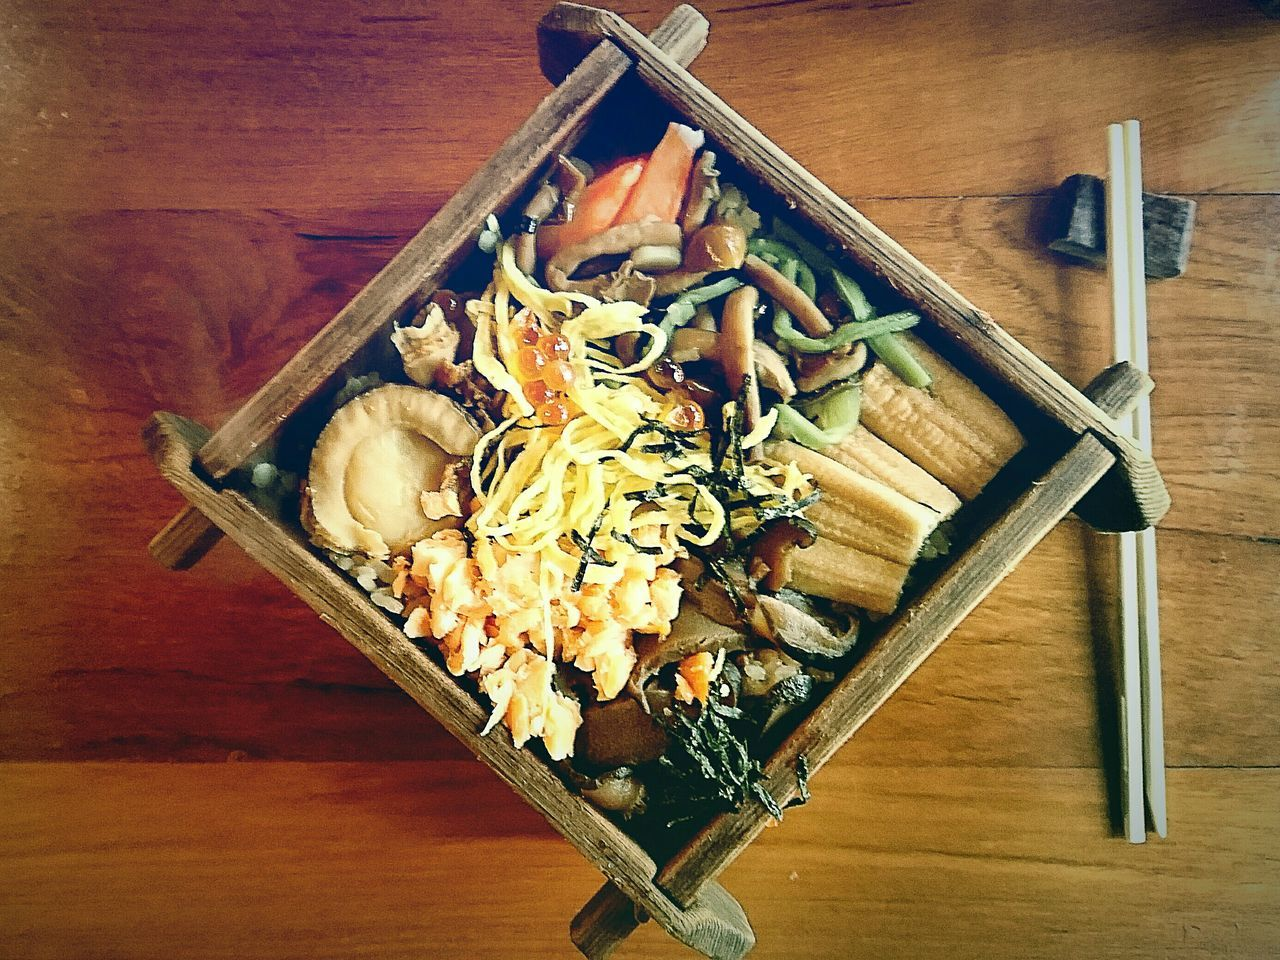 Rice Box Food Photography Unique Healthy Lifestyle Healthy Life Healthy Diet Healthy Eating Yummy Grateful Delicious Special Moment Menu Choice Inspirations Japanese Food Feel The Journey Food Art Food Plating Passion EyeEm Best Edits EyeEm Gallery Harmony Hungry Bangkok Eyeem Market Sashimi Dinner